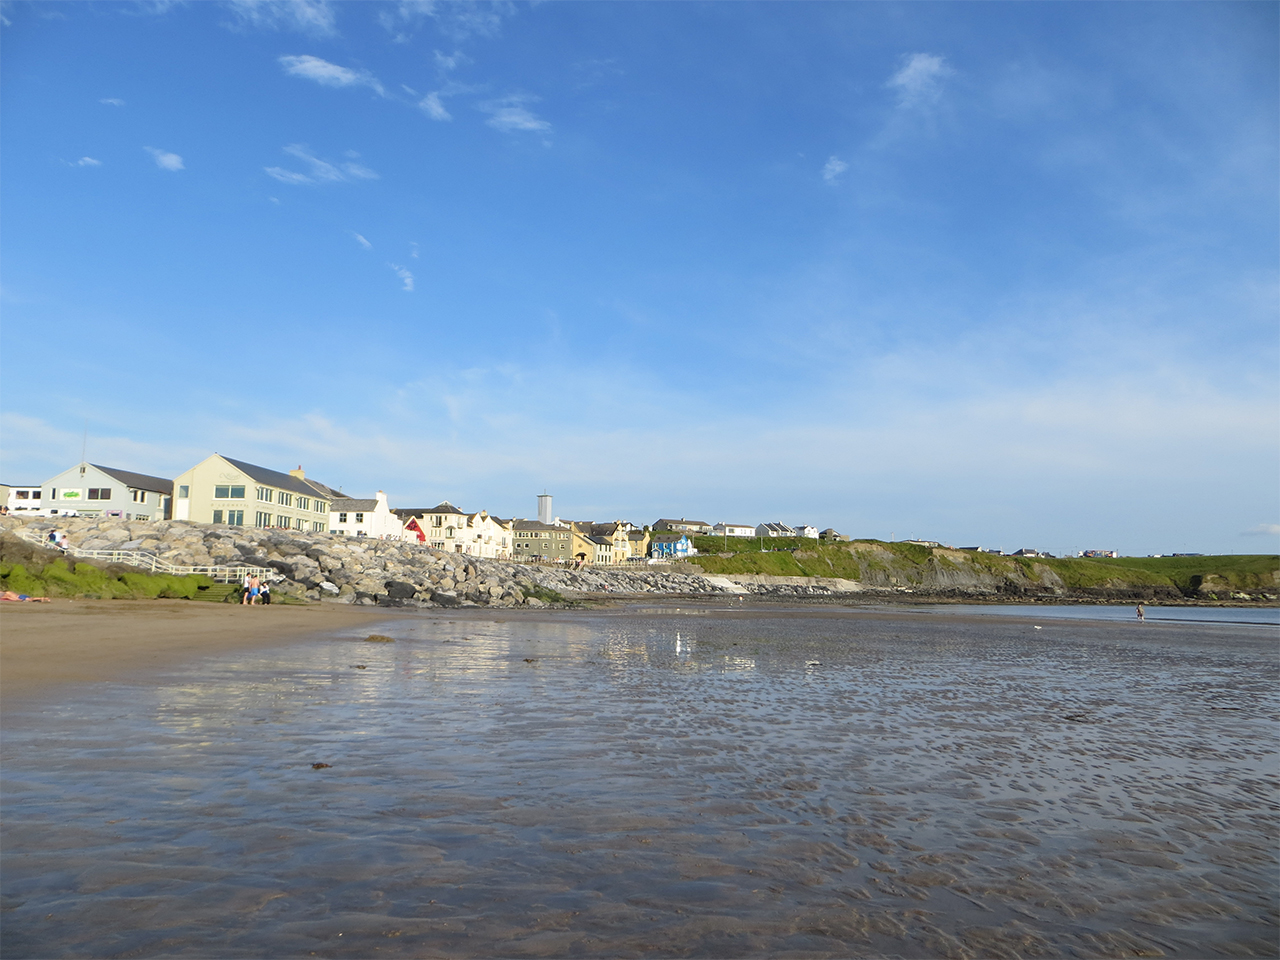 Lahinch Beach from the strand with the town in the background, County Clare